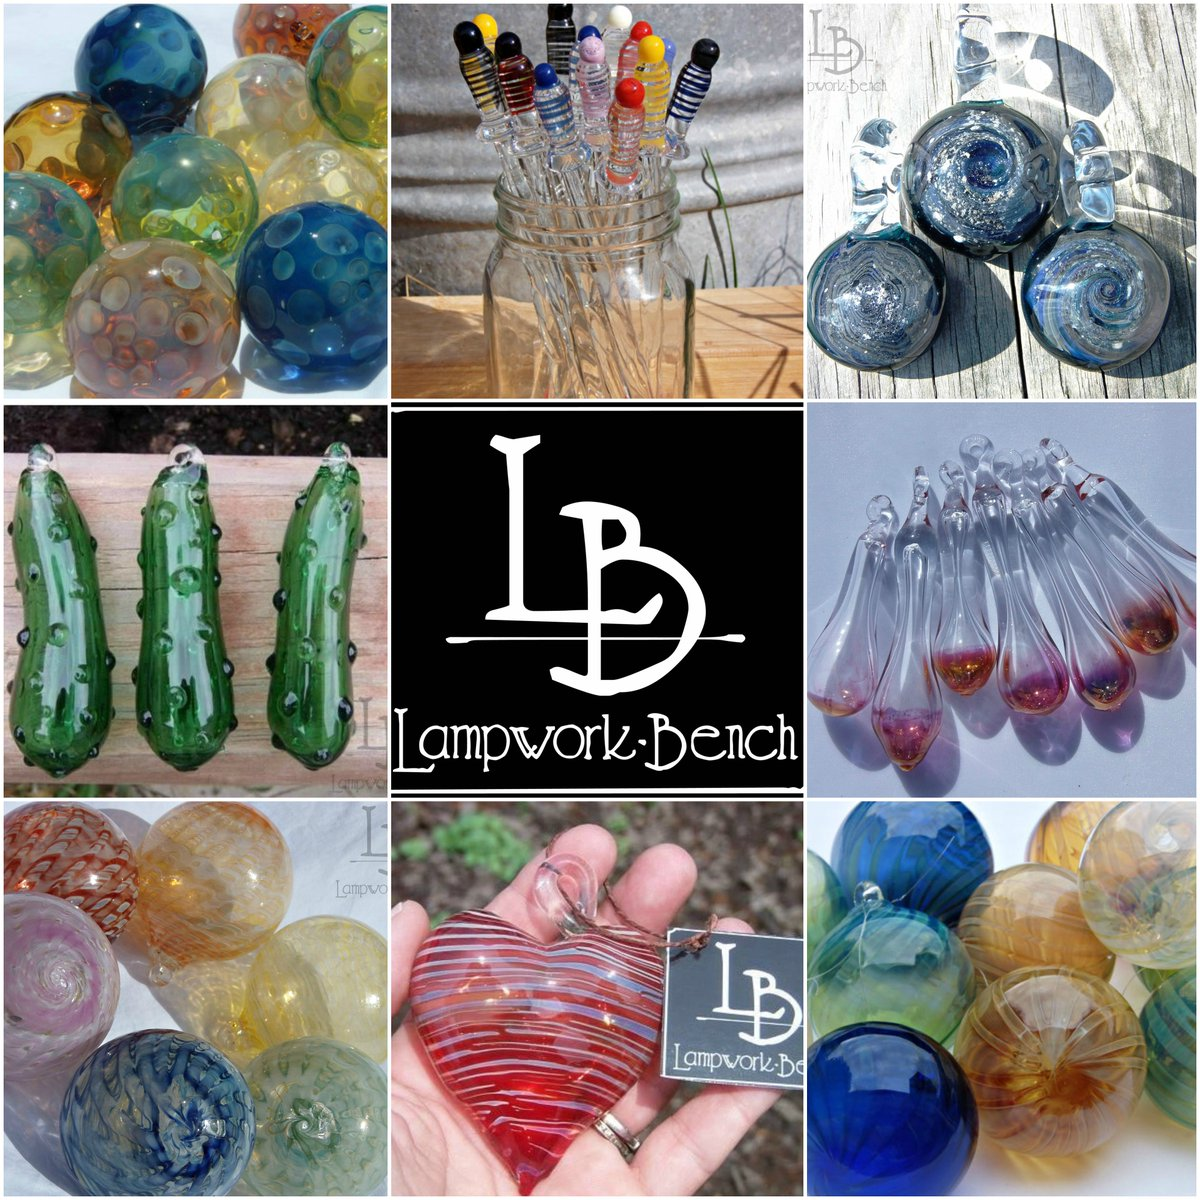 Get these discounts before they&#39;re gone! ON SALE NOW #etsy  https://www. etsyonsale.com/shop/LampworkB ench &nbsp; …  #handmade #gifts #glass #handblown #trinkets #decor #mothersday #OnSale #goodmorning #Monday #LoveIsLoveEveryDay <br>http://pic.twitter.com/LQe4rdSL6y